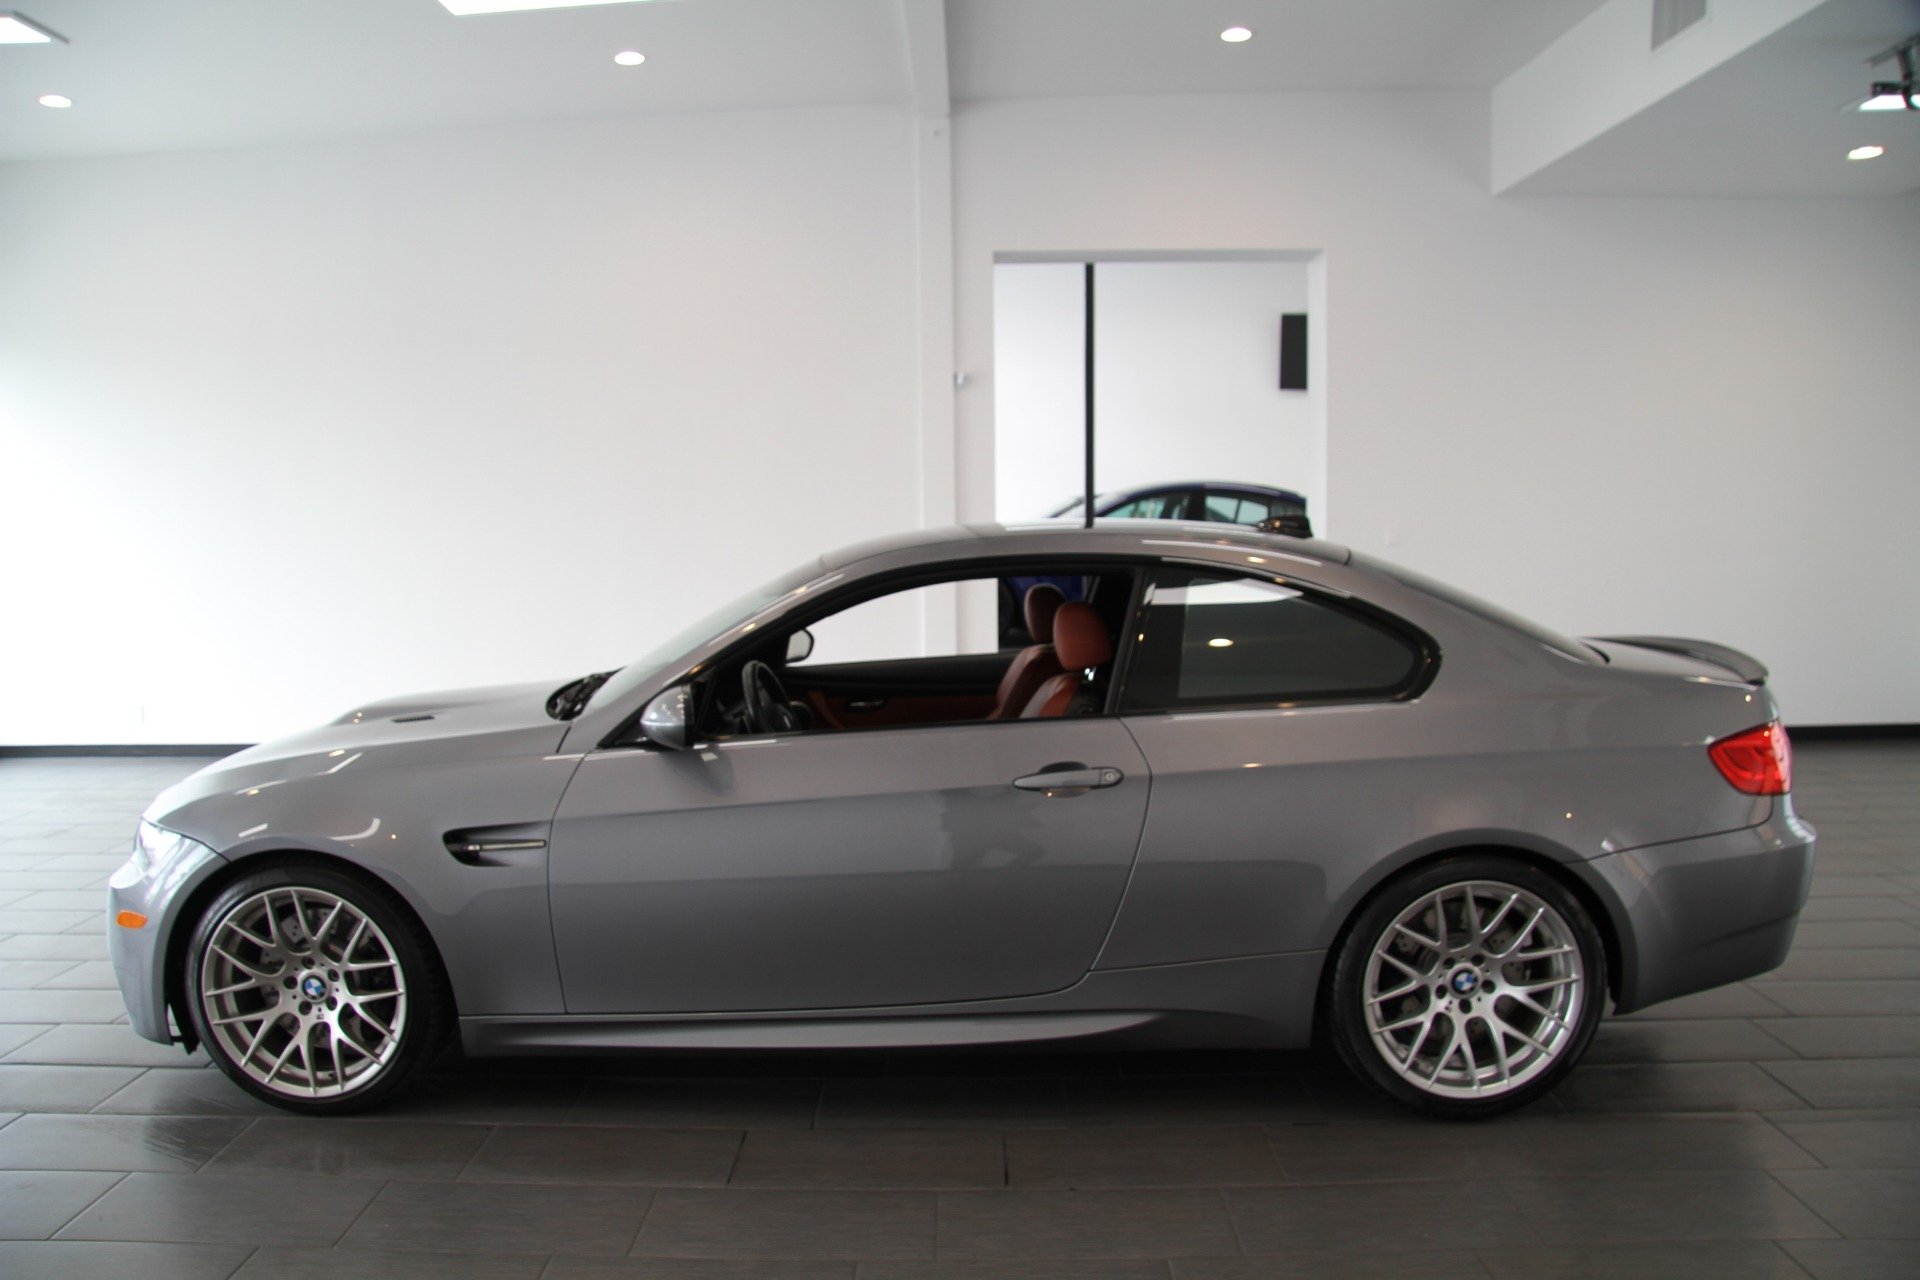 2011 BMW M3 Stock # 646018 for sale near Redondo Beach, CA ...